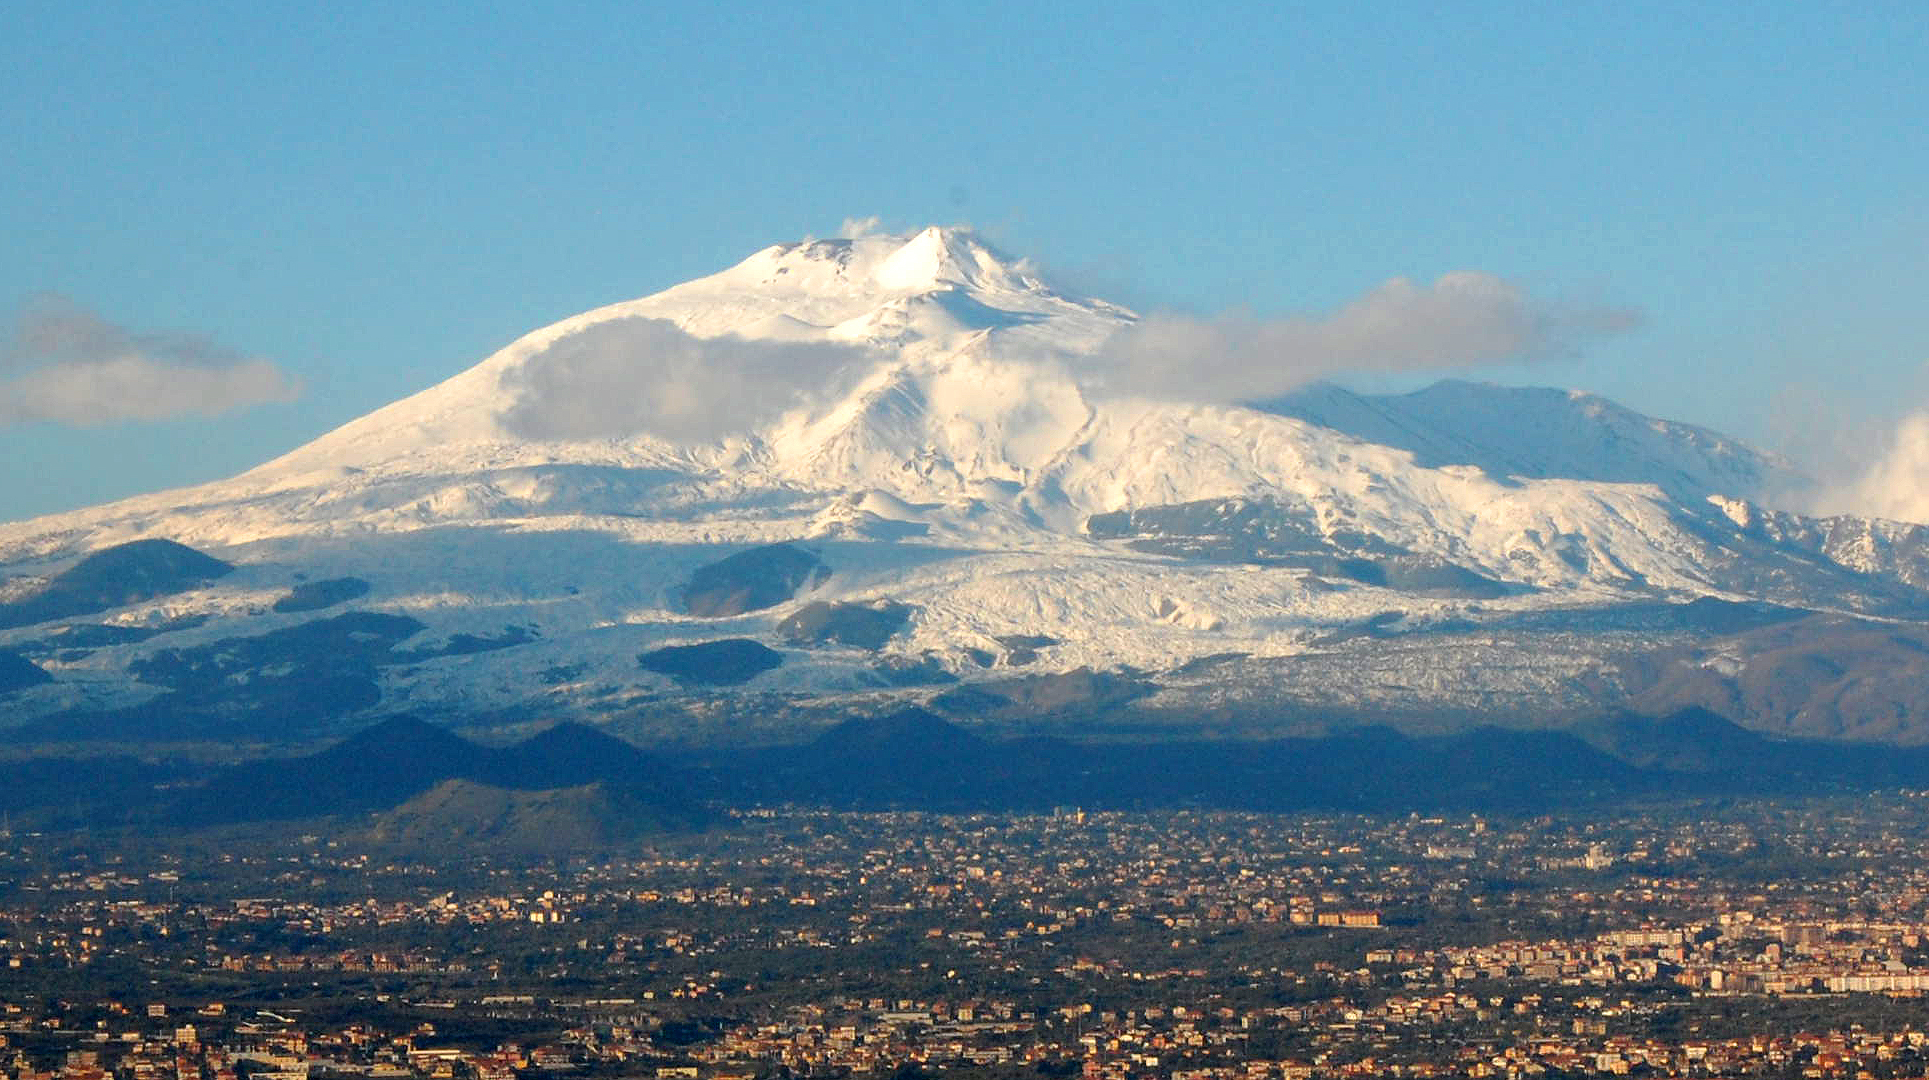 SECTION 7 - Mt_Etna_and_CataniaRESIZED